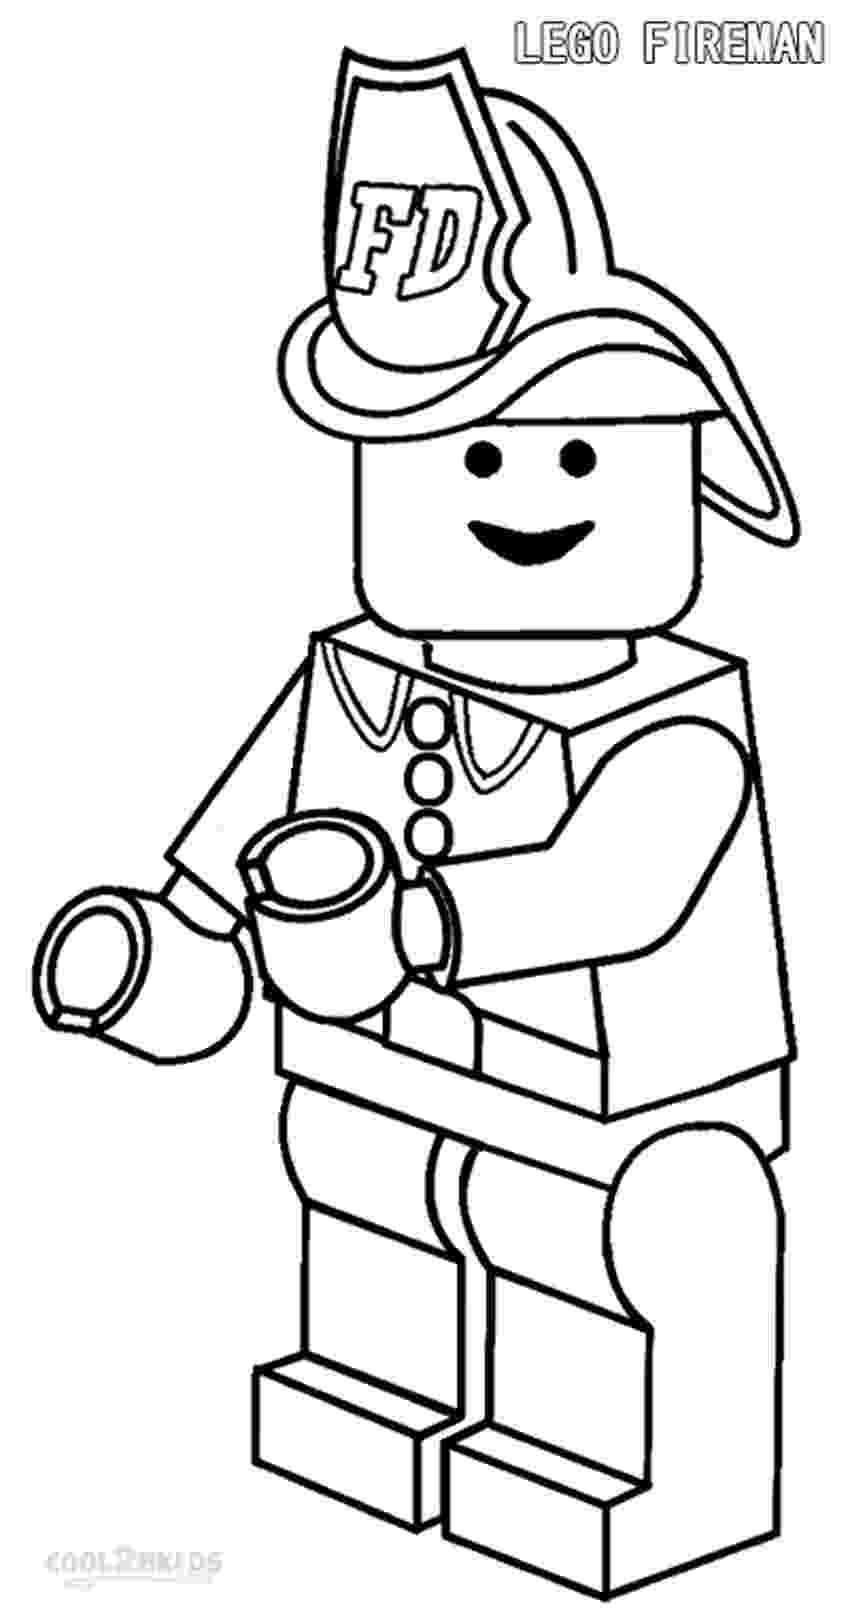 lego coloring sheets free lego coloring pages with characters chima ninjago city coloring sheets free lego